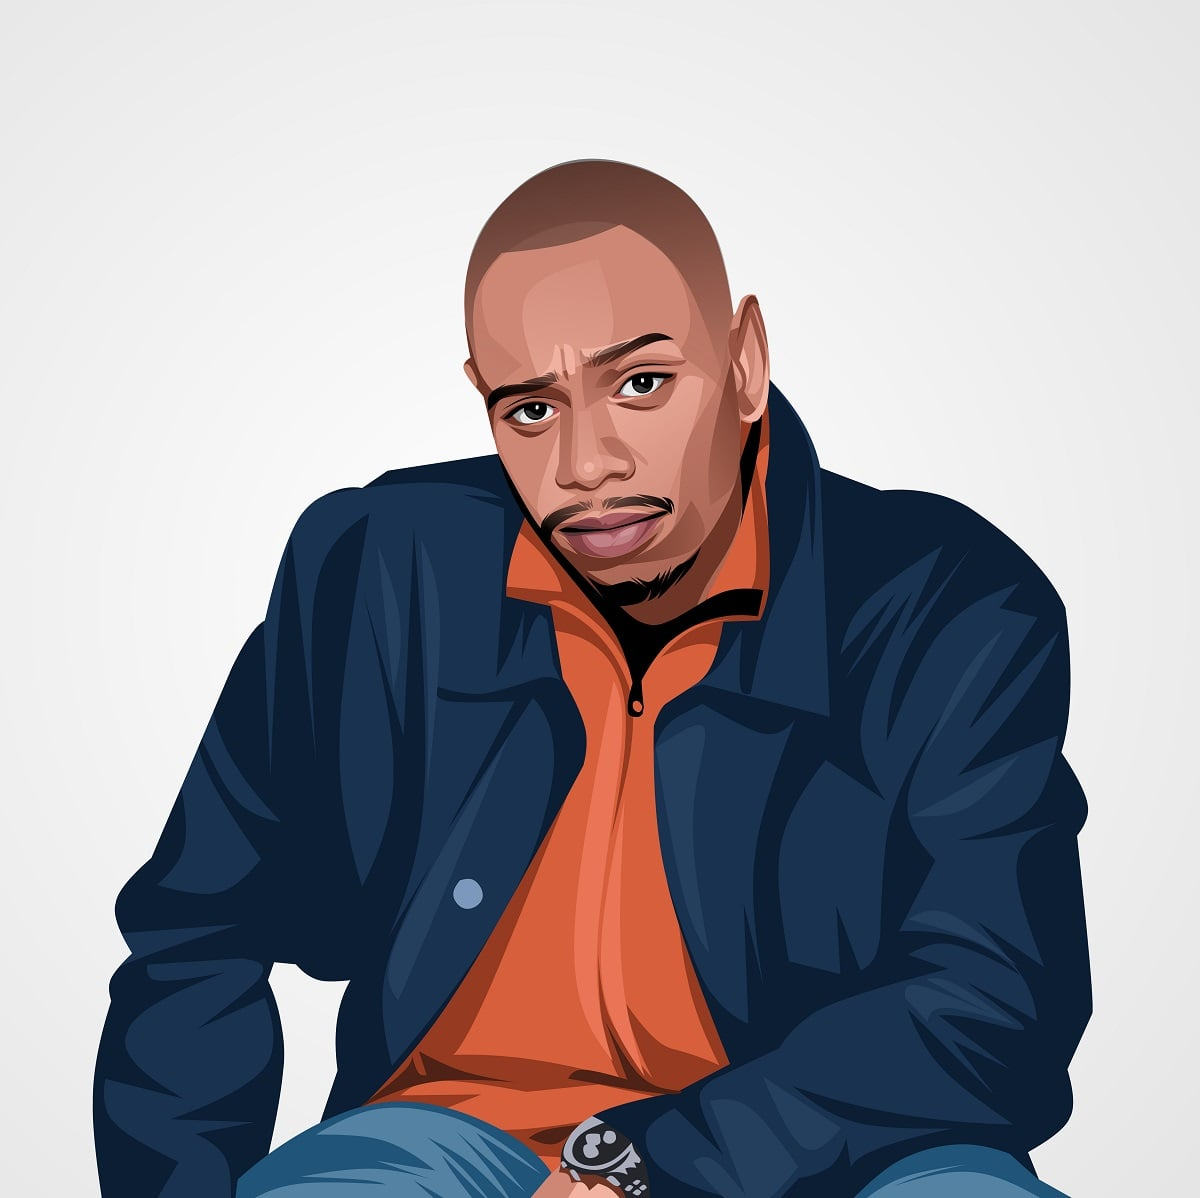 Dave Chappelle © Inspirationfeed. All rights reserved.